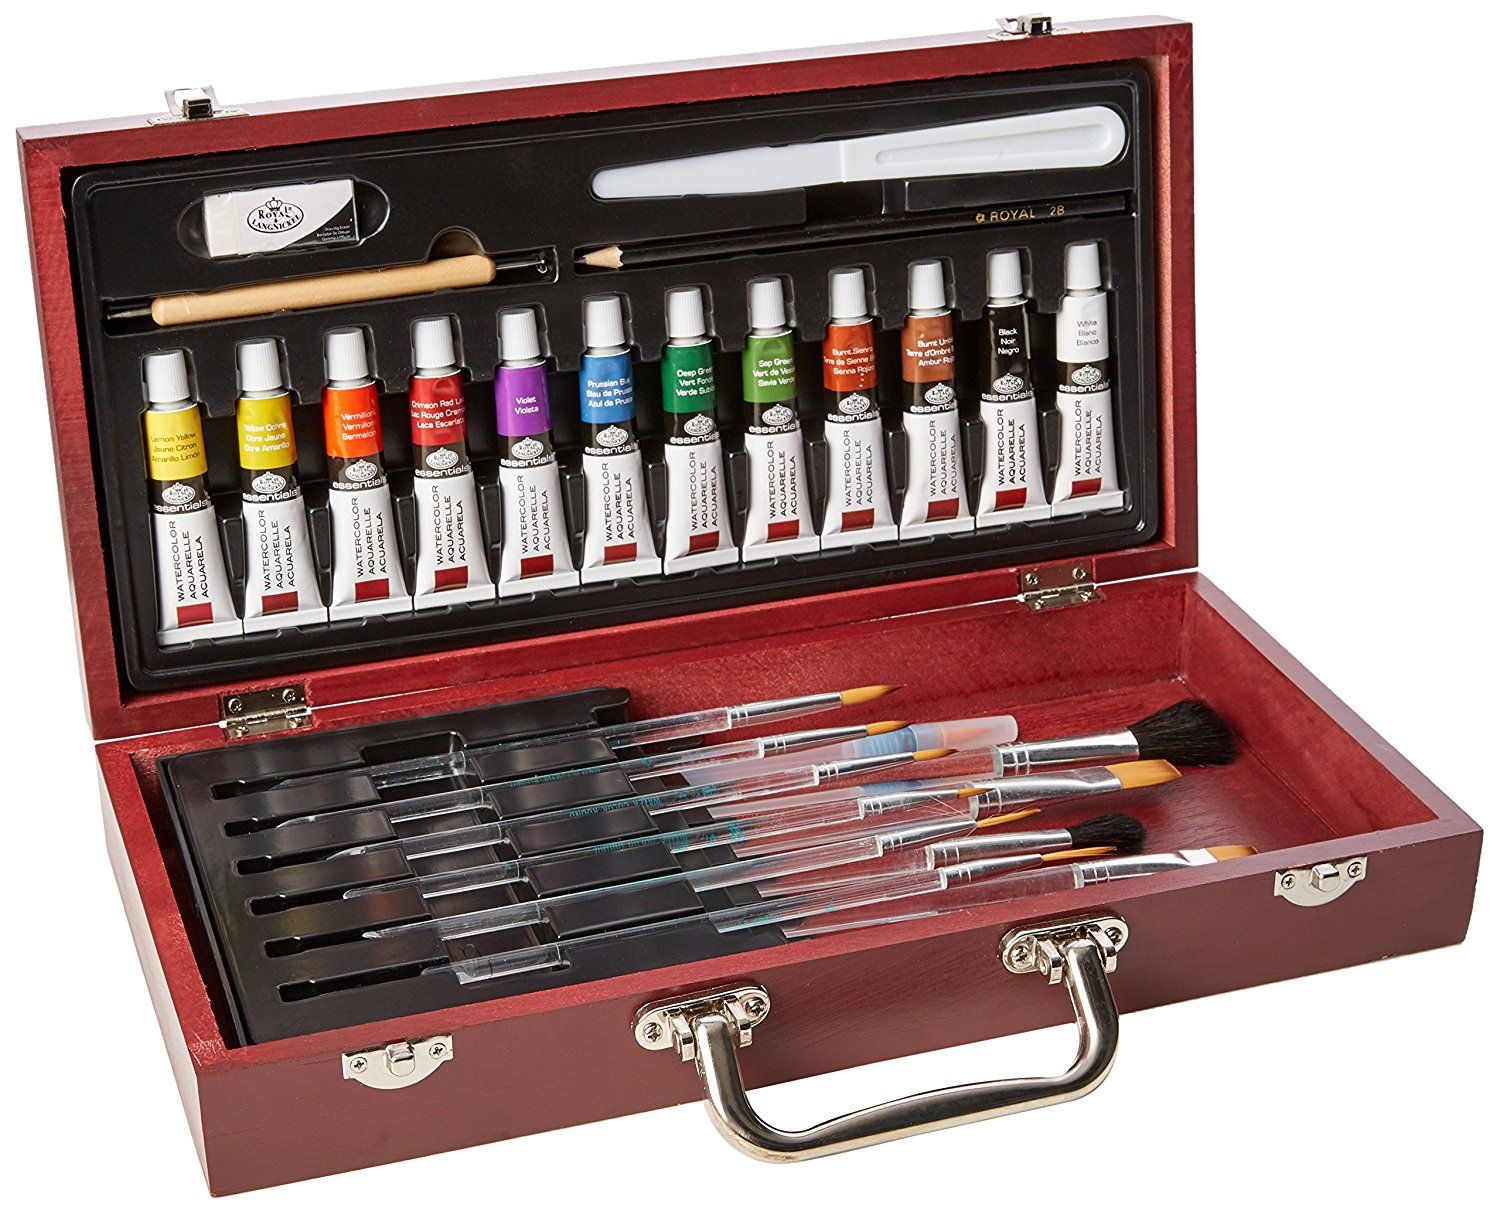 Here Is Quite The Adorable Set Of Watercolor Paints In A Wooden